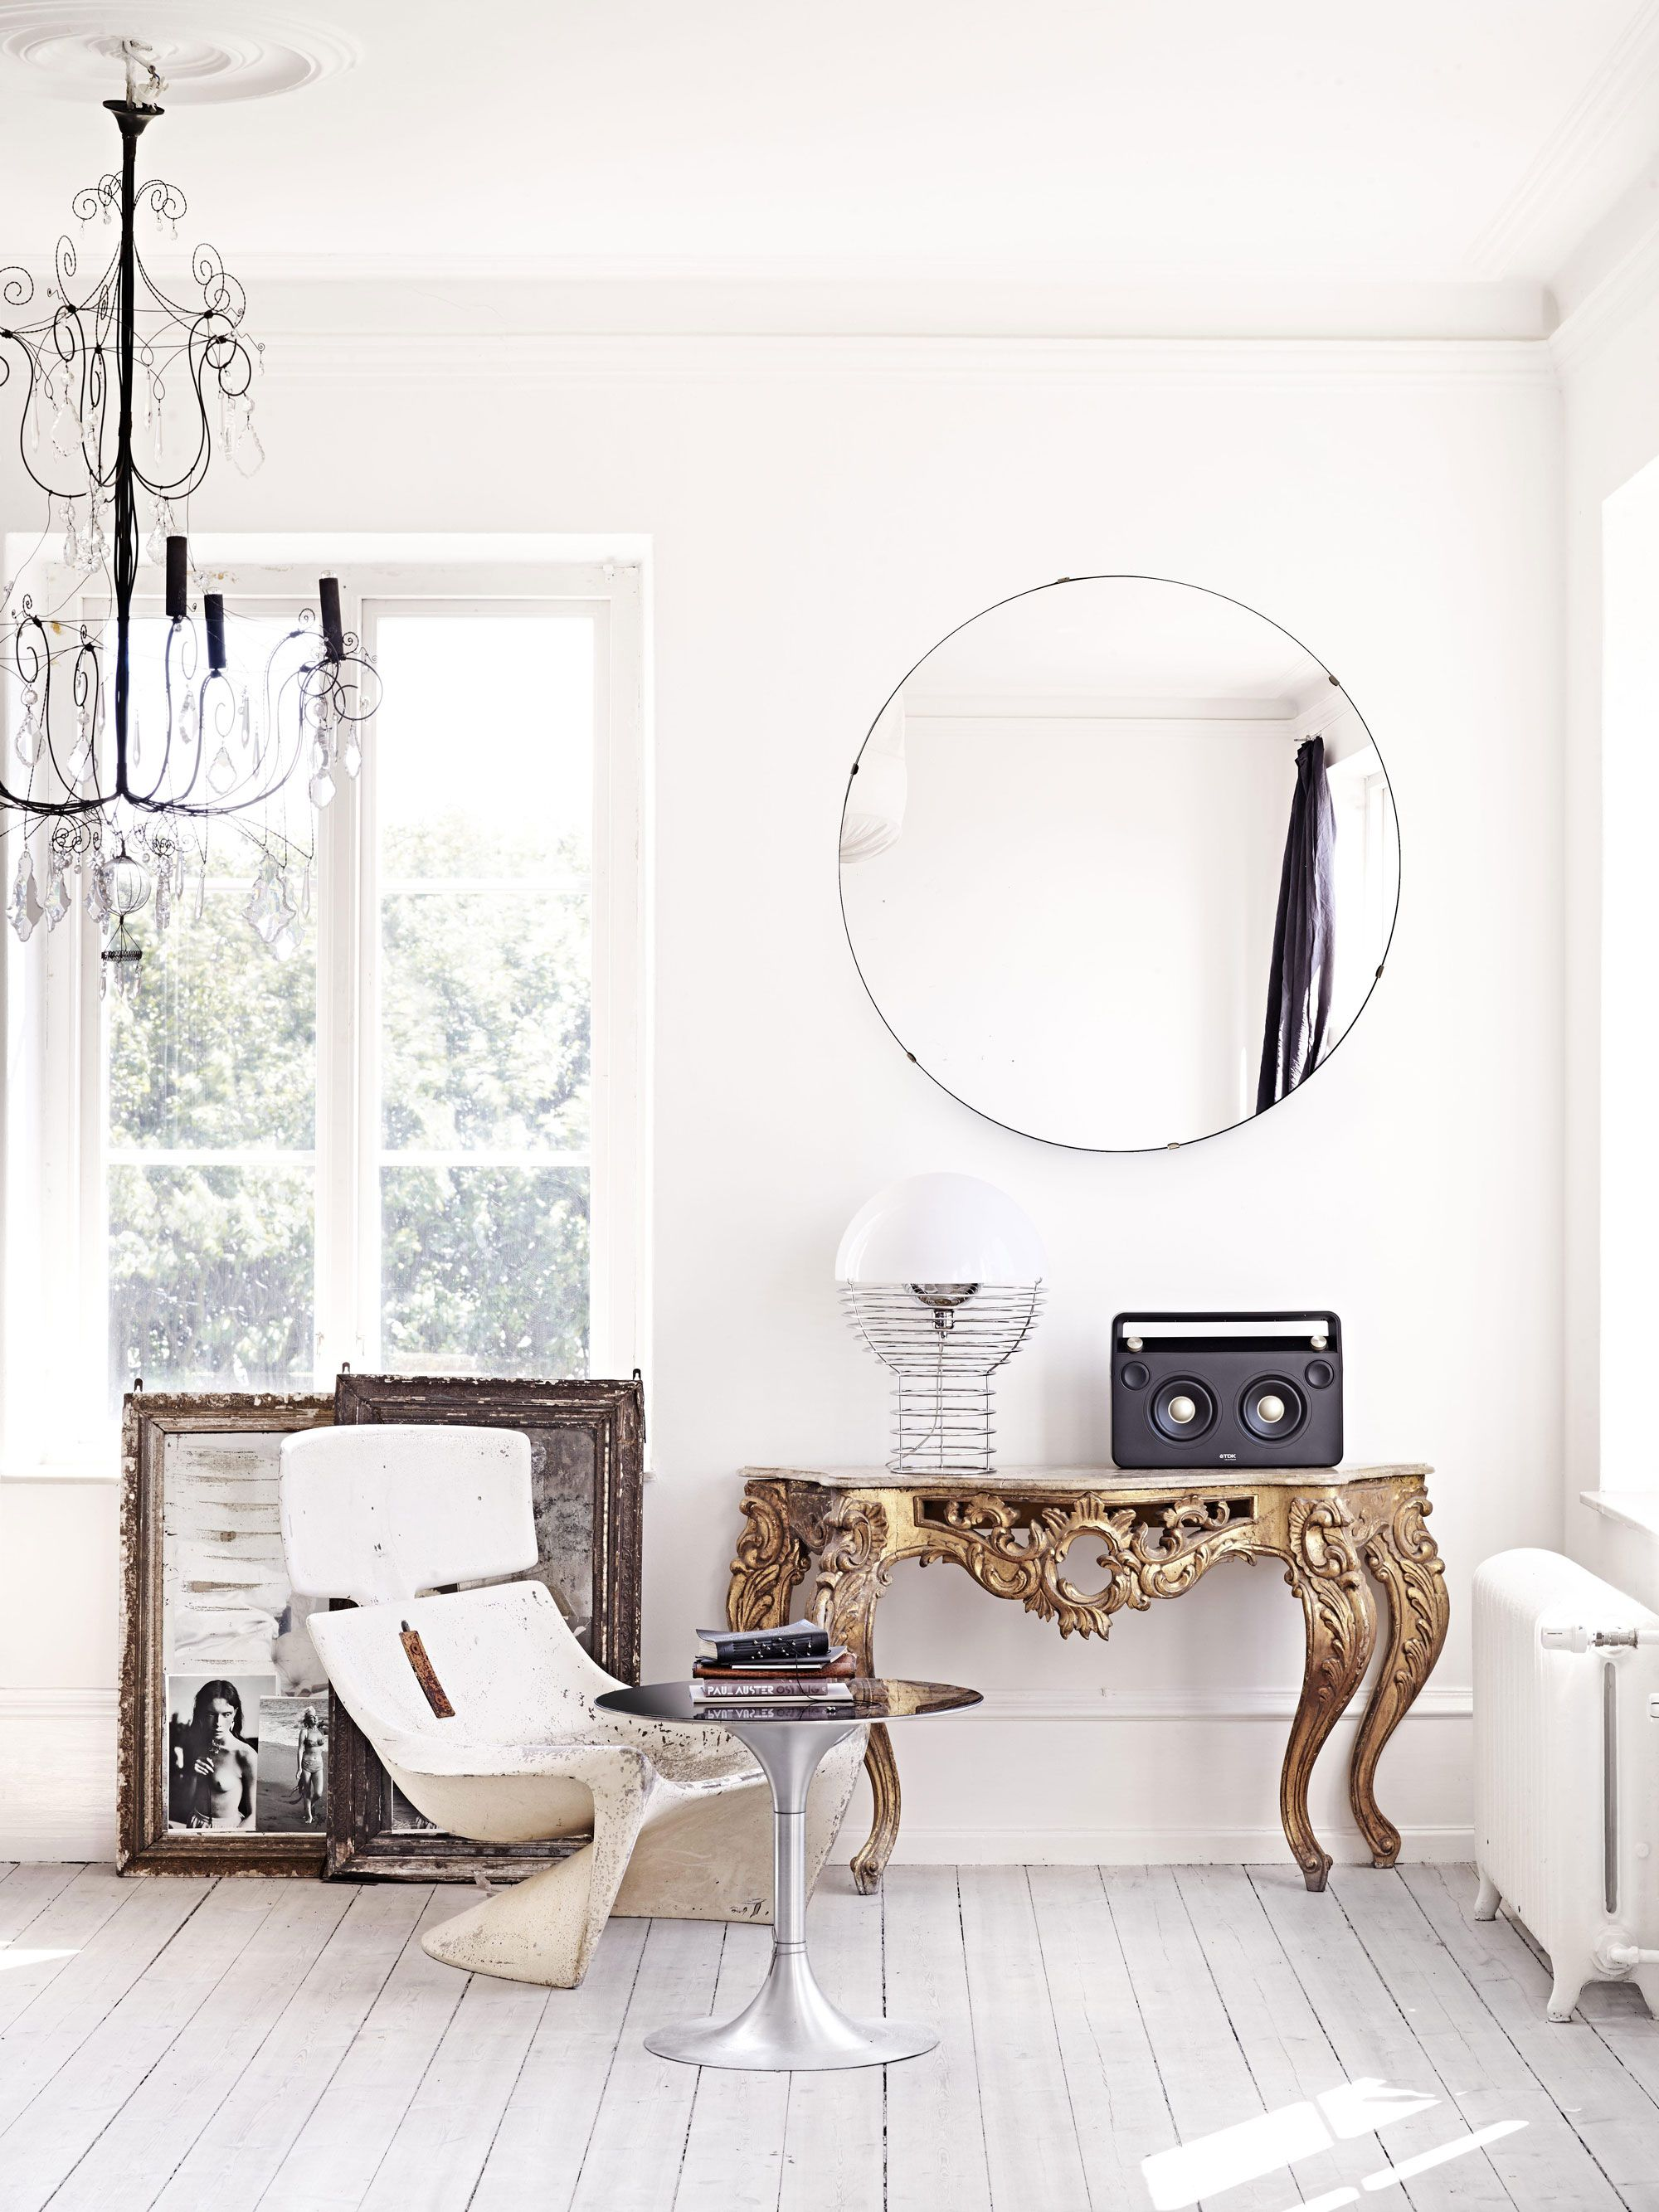 Swedish born interior stylist marie olsson nylander has very good taste as you can see from her own house with a bohemian de luxe style